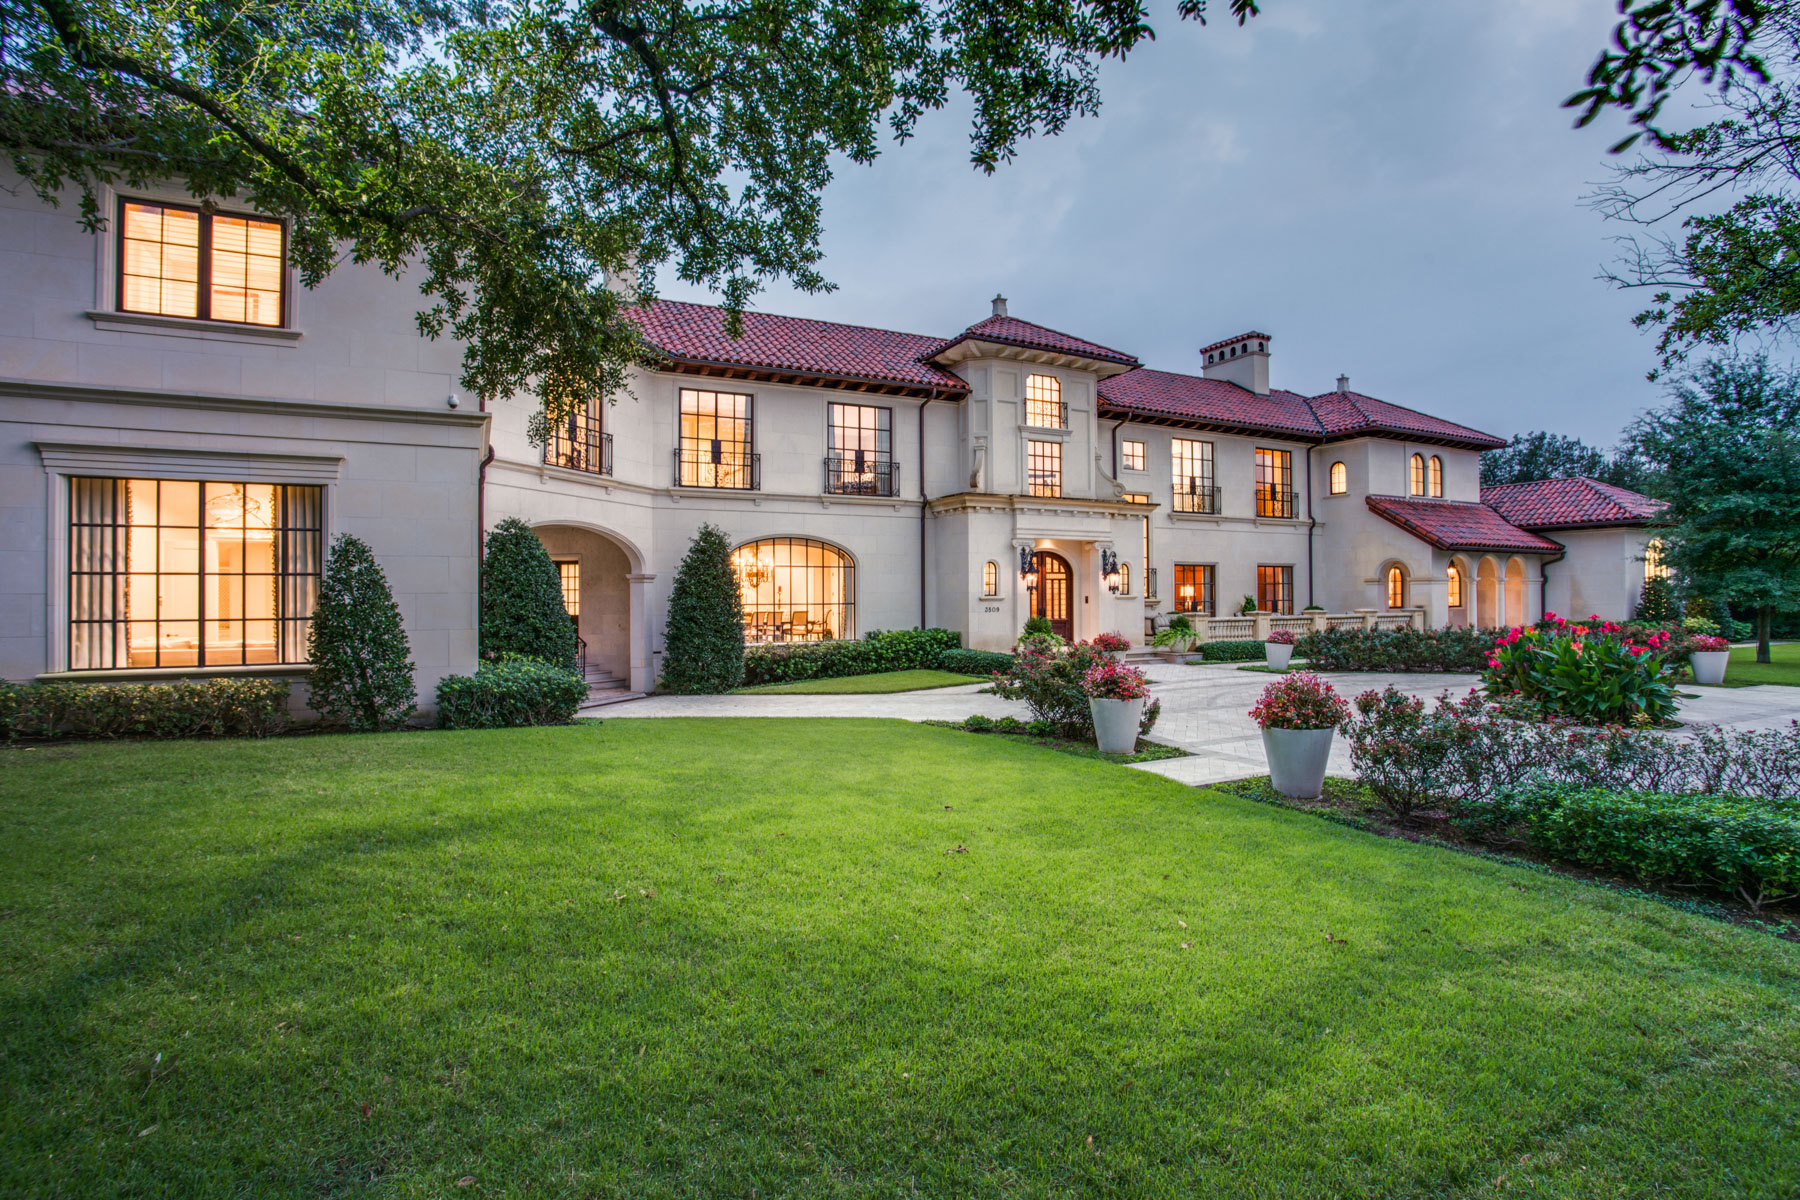 Single Family Homes for Sale at Magnificent Highland Park Estate 3509 Euclid Ave Highland Park, Texas 75205 United States